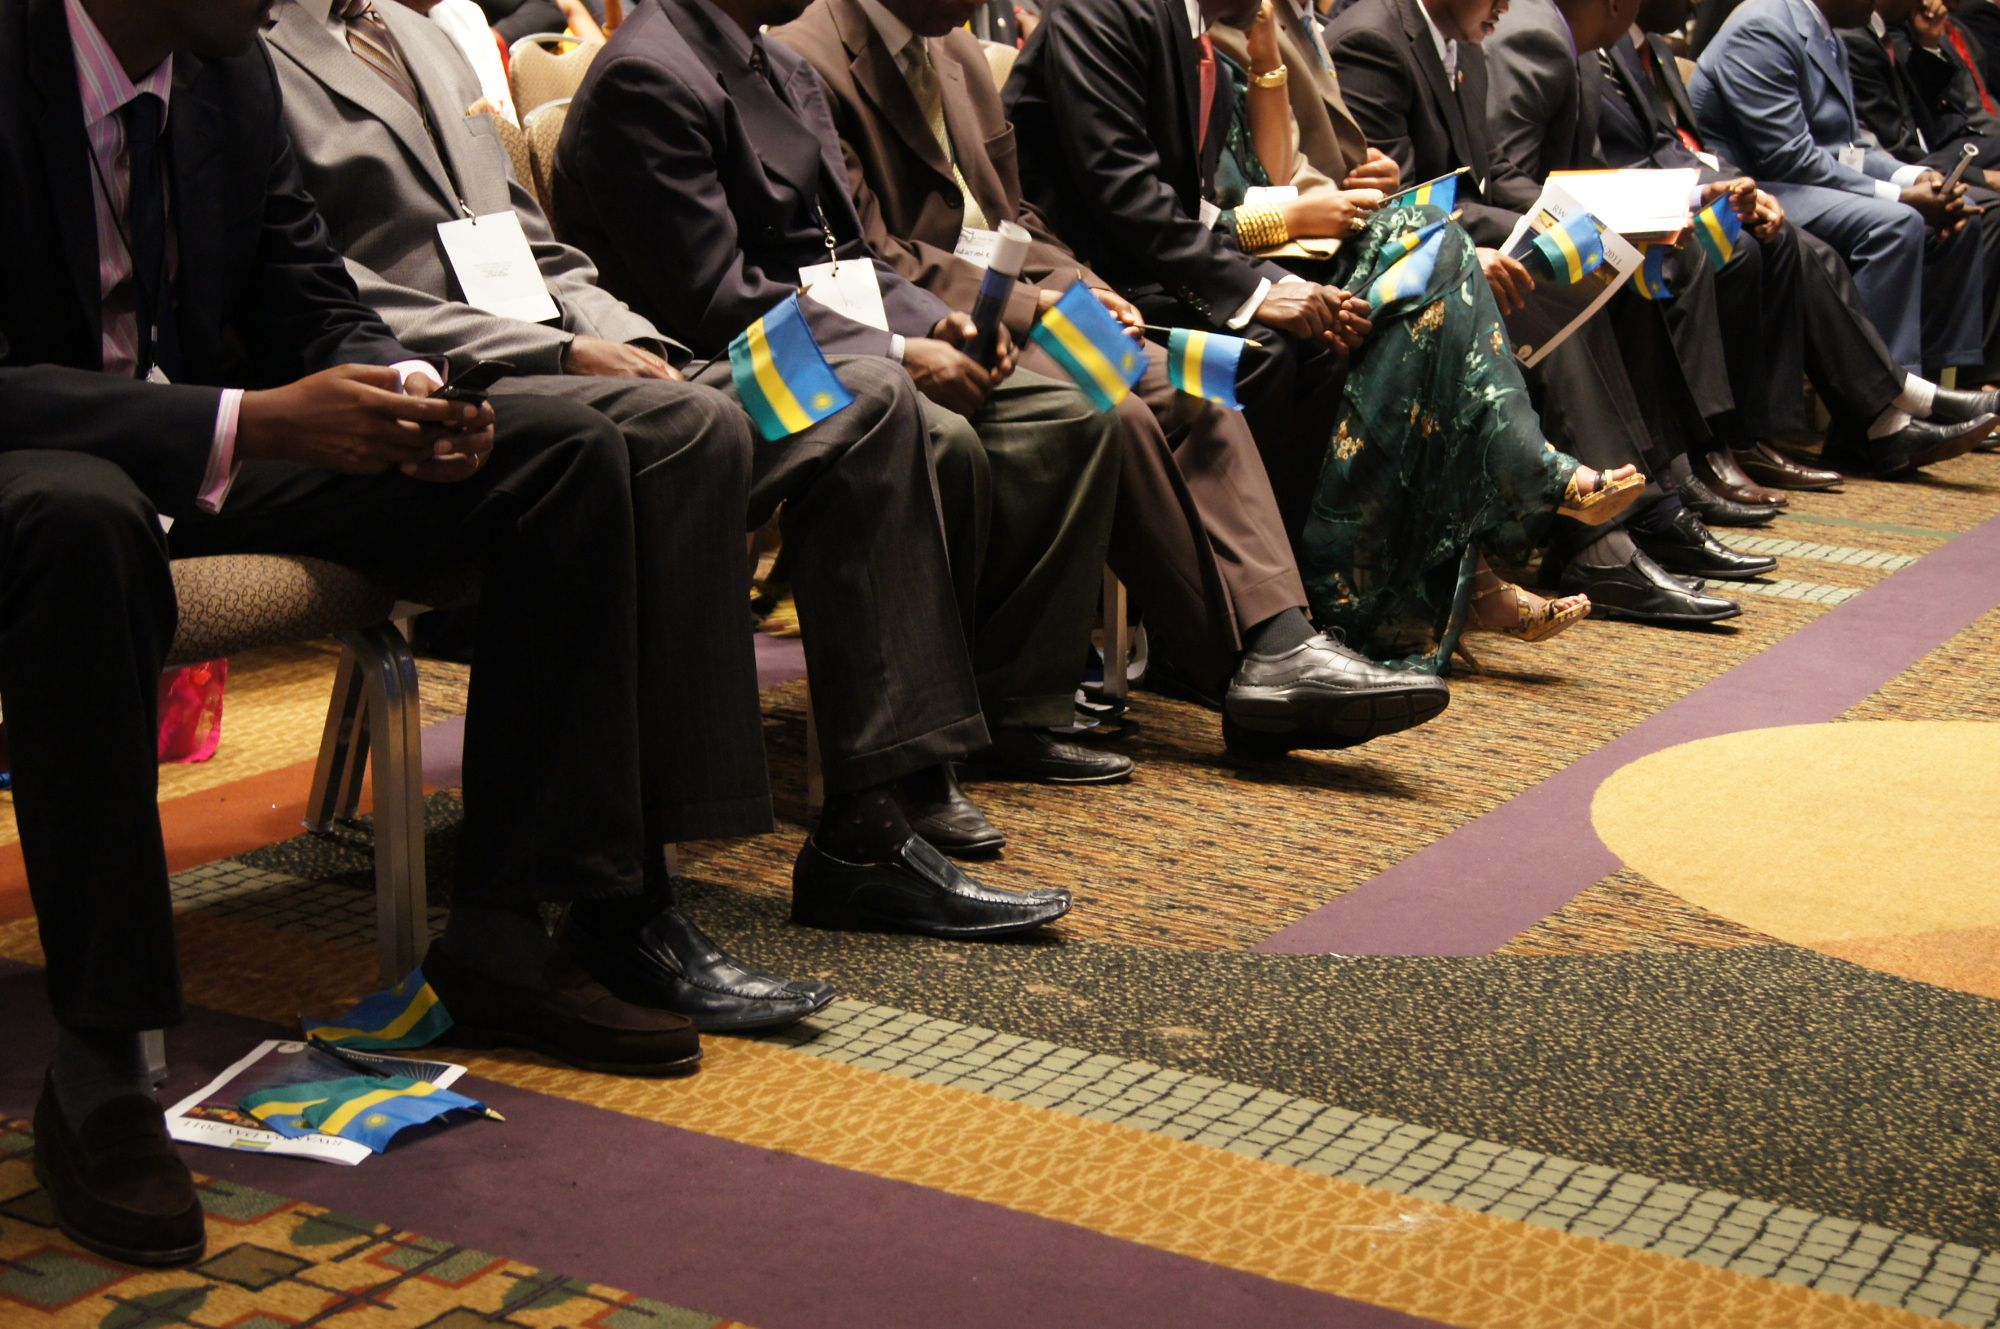 Rwanda Day 2011 in Chicago to bring together thousands of